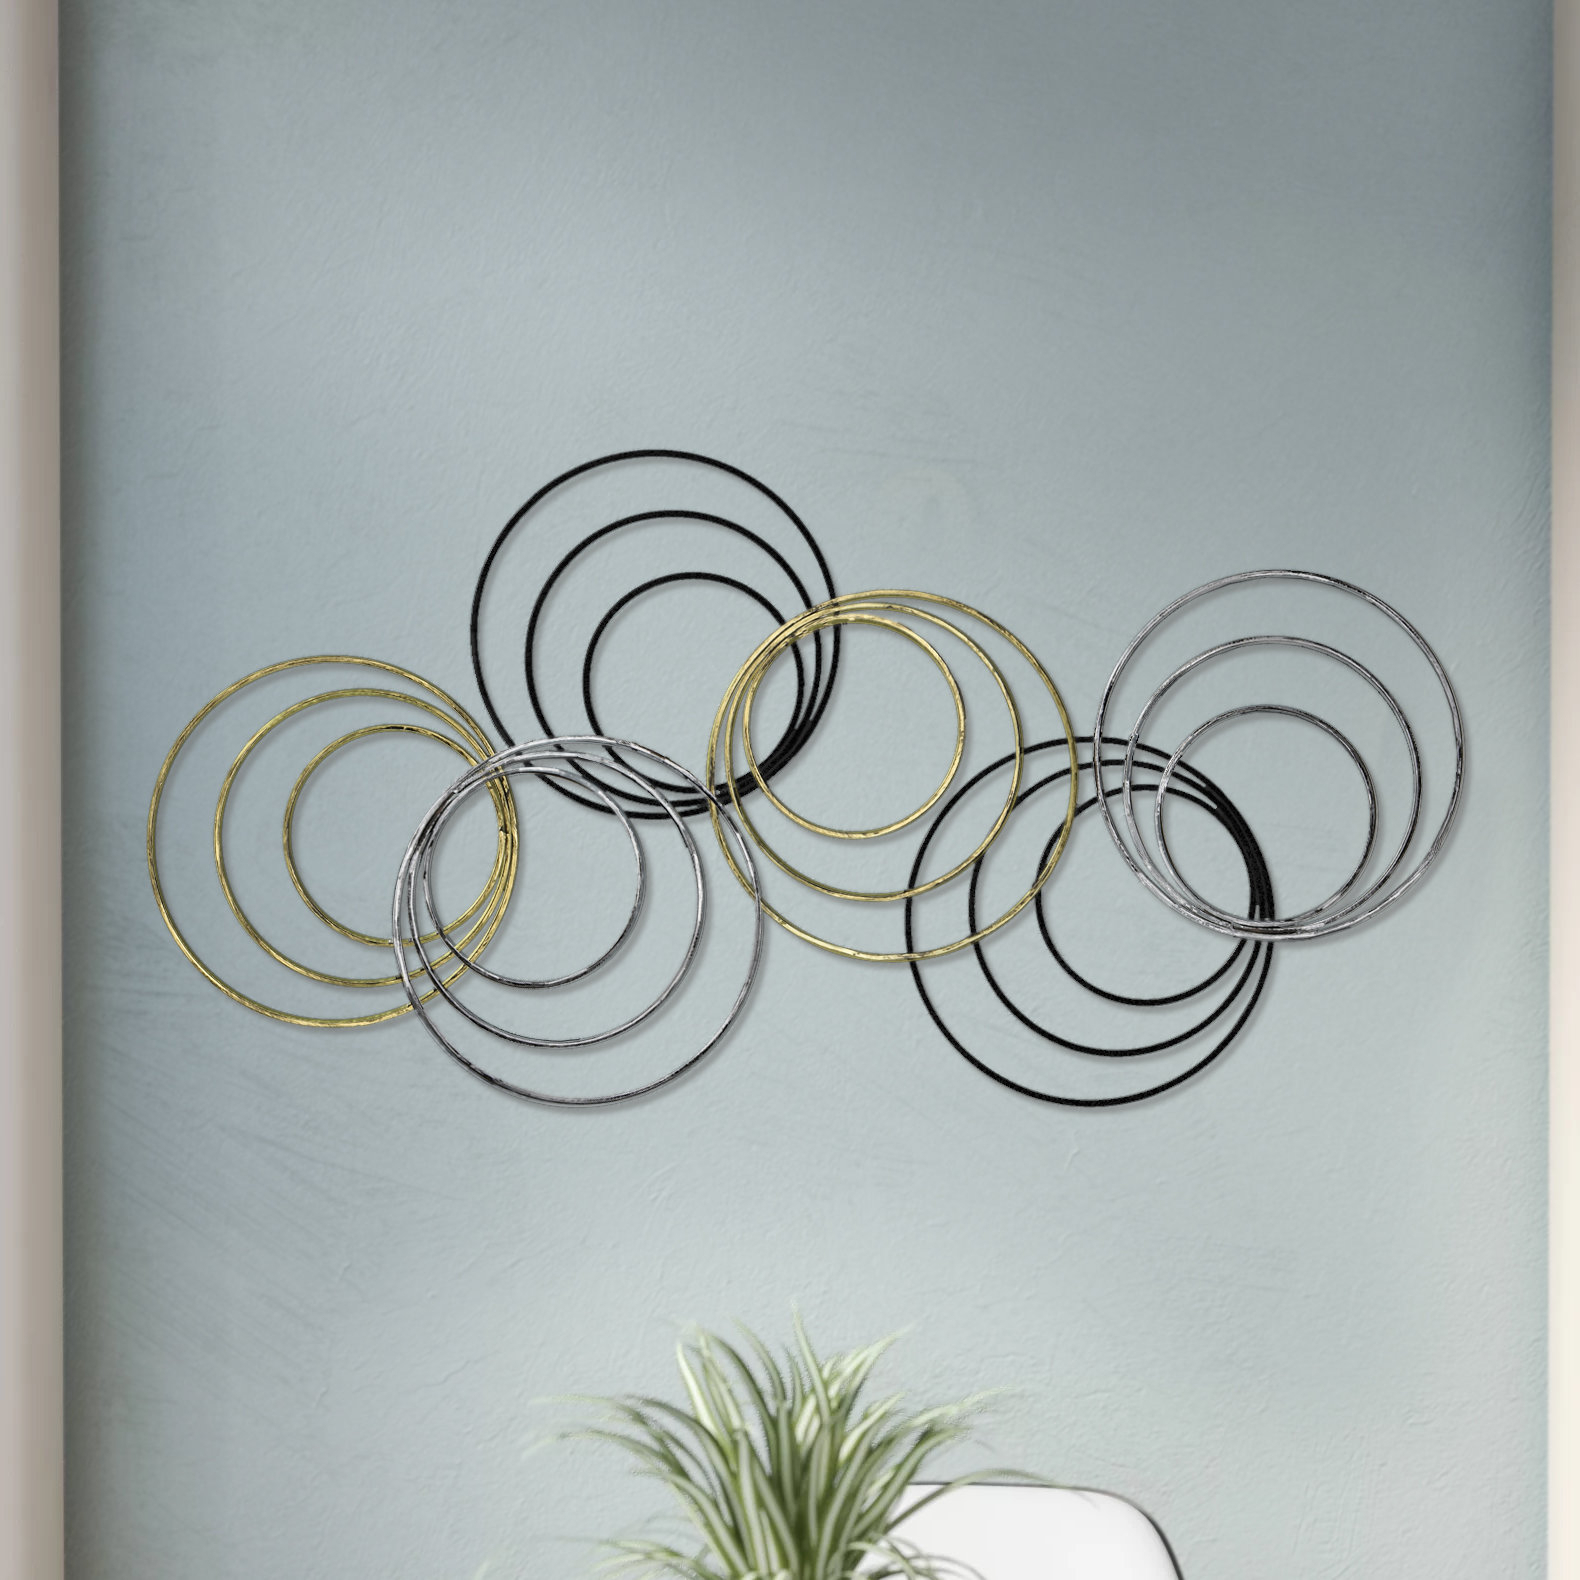 Rings Wall Décor Regarding Rings Wall Decor (View 10 of 30)